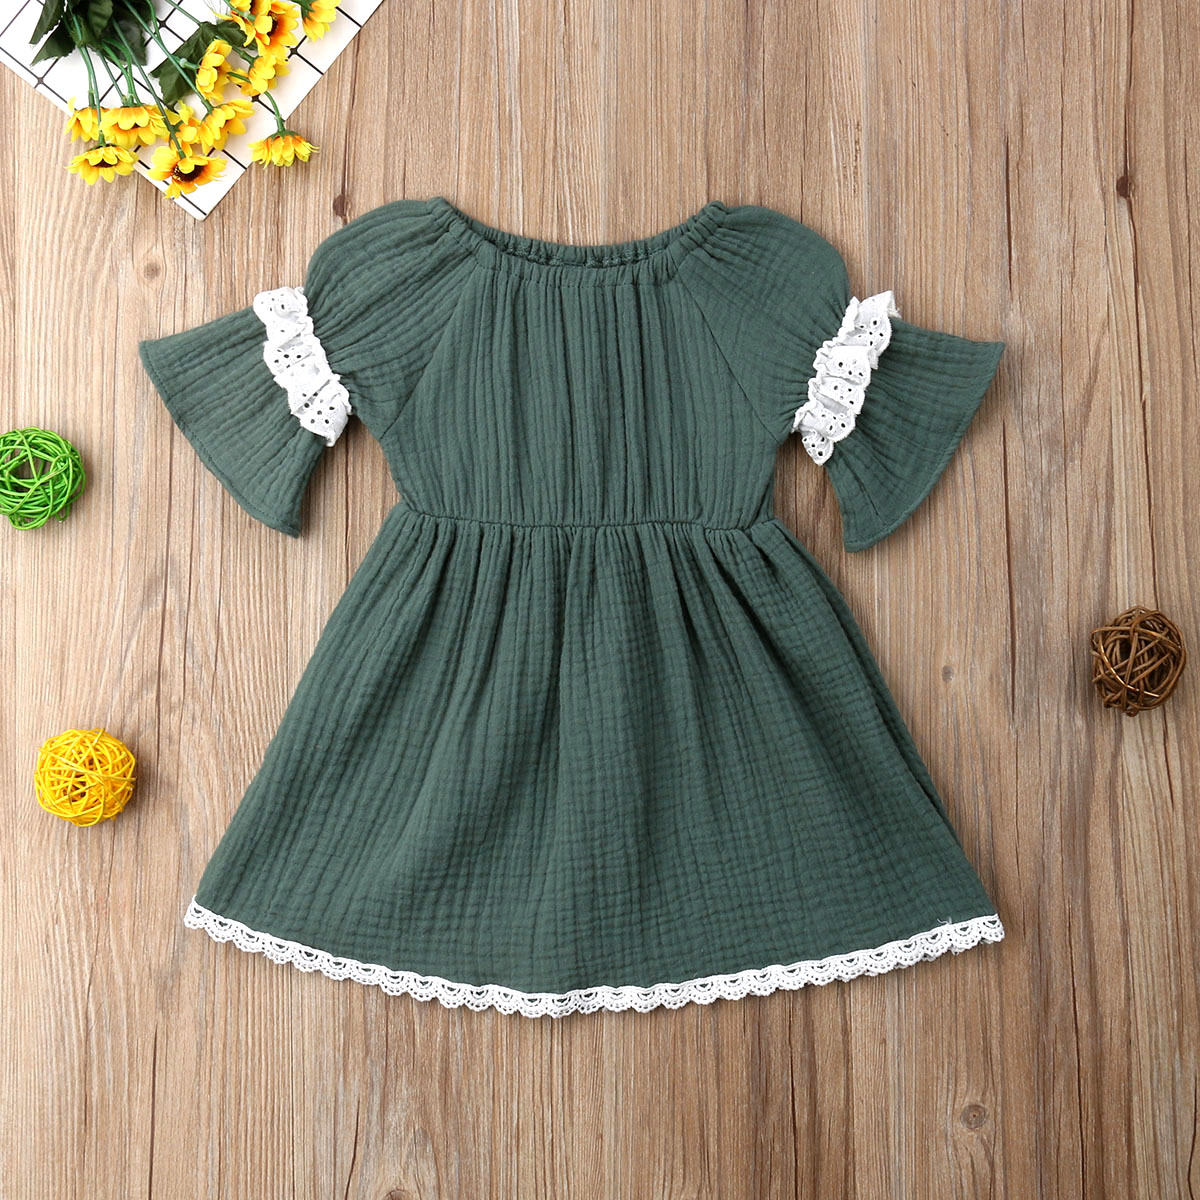 Fourth of July Baby Girls Summer Independence Day Sleeveless Tassel Dress 6M-3Y